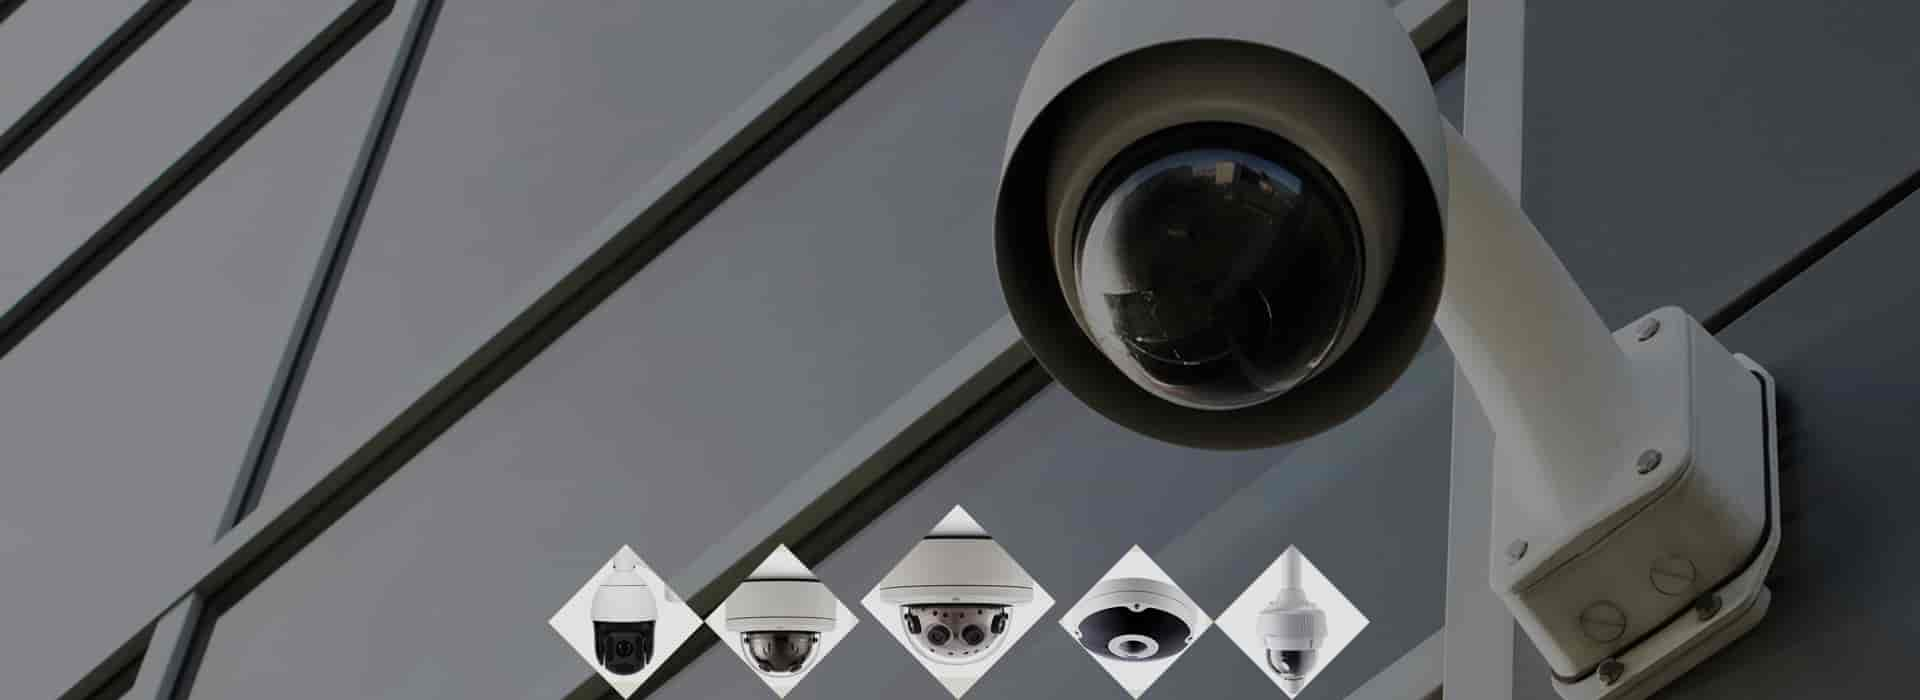 CCTV Cameras Installation Los Angeles